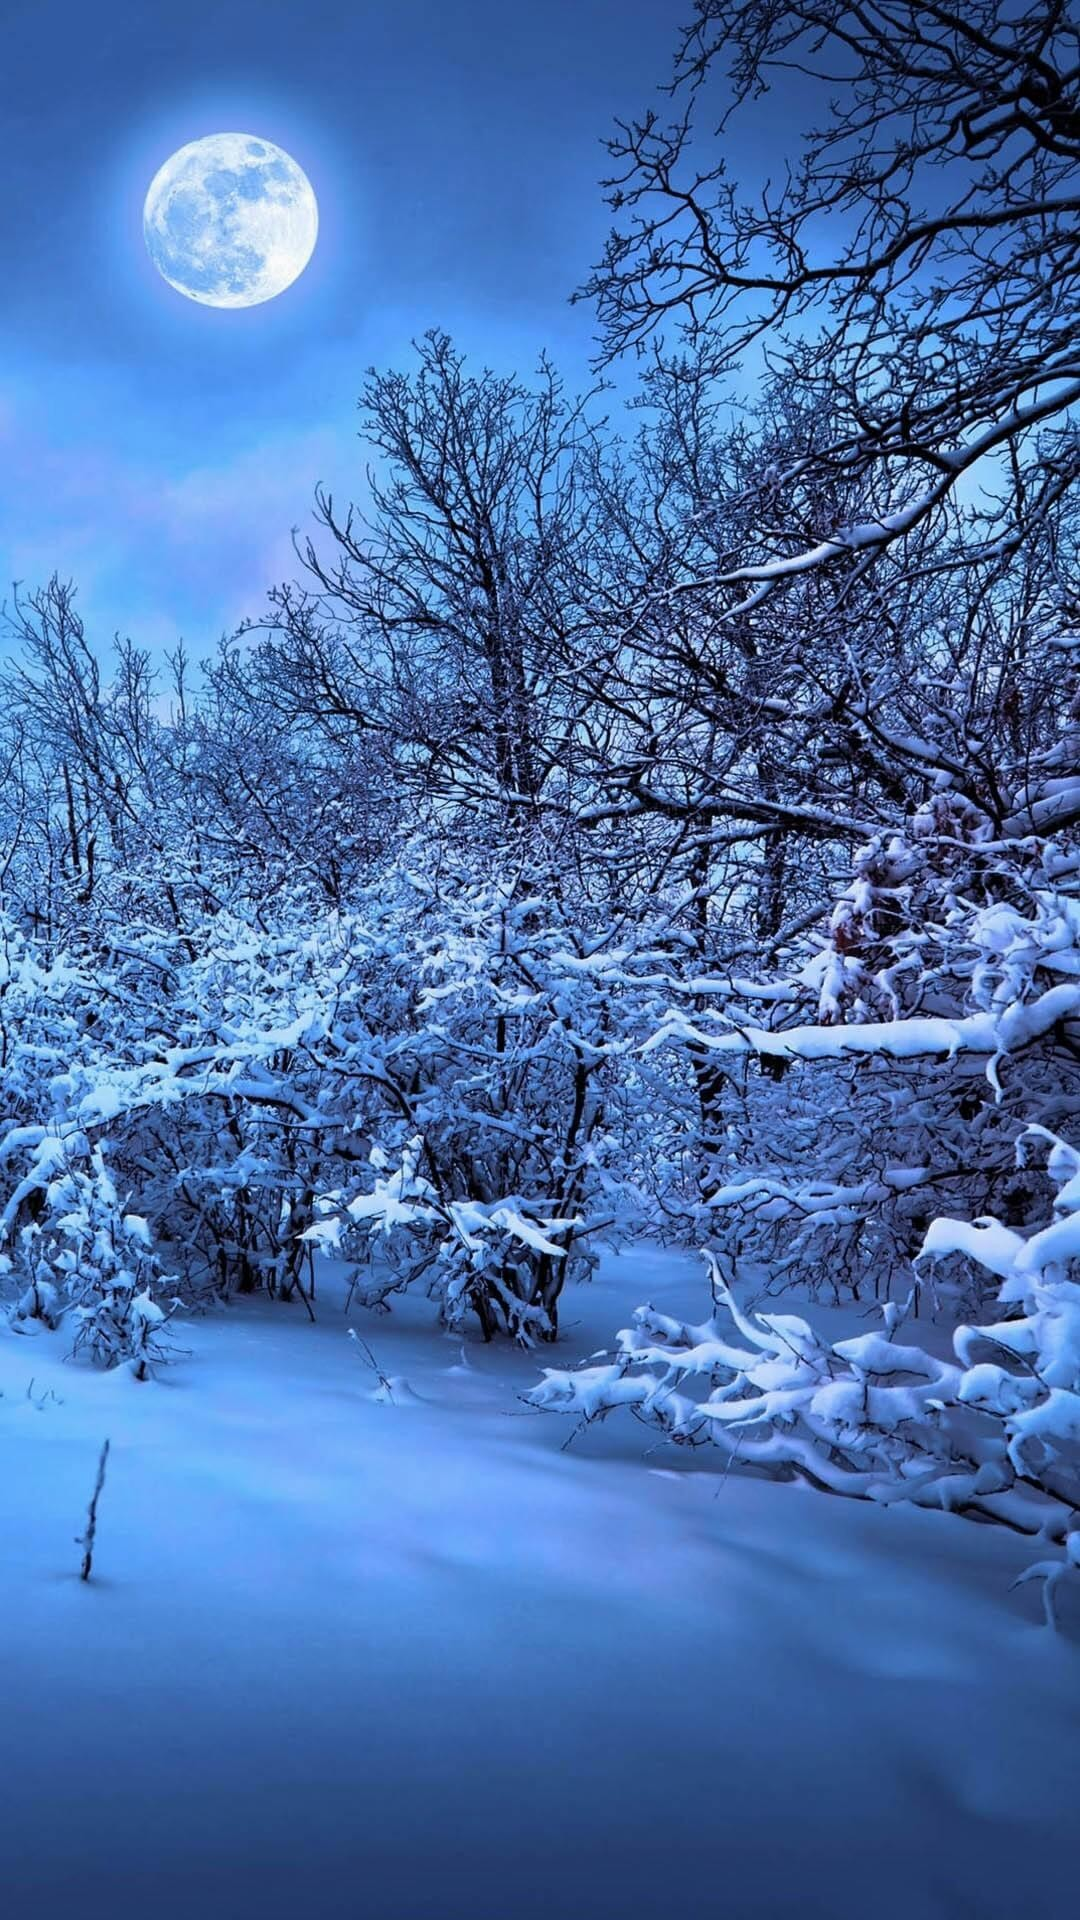 wallpaper.wiki-Winter-Night-Image-for-Iphone-PIC-